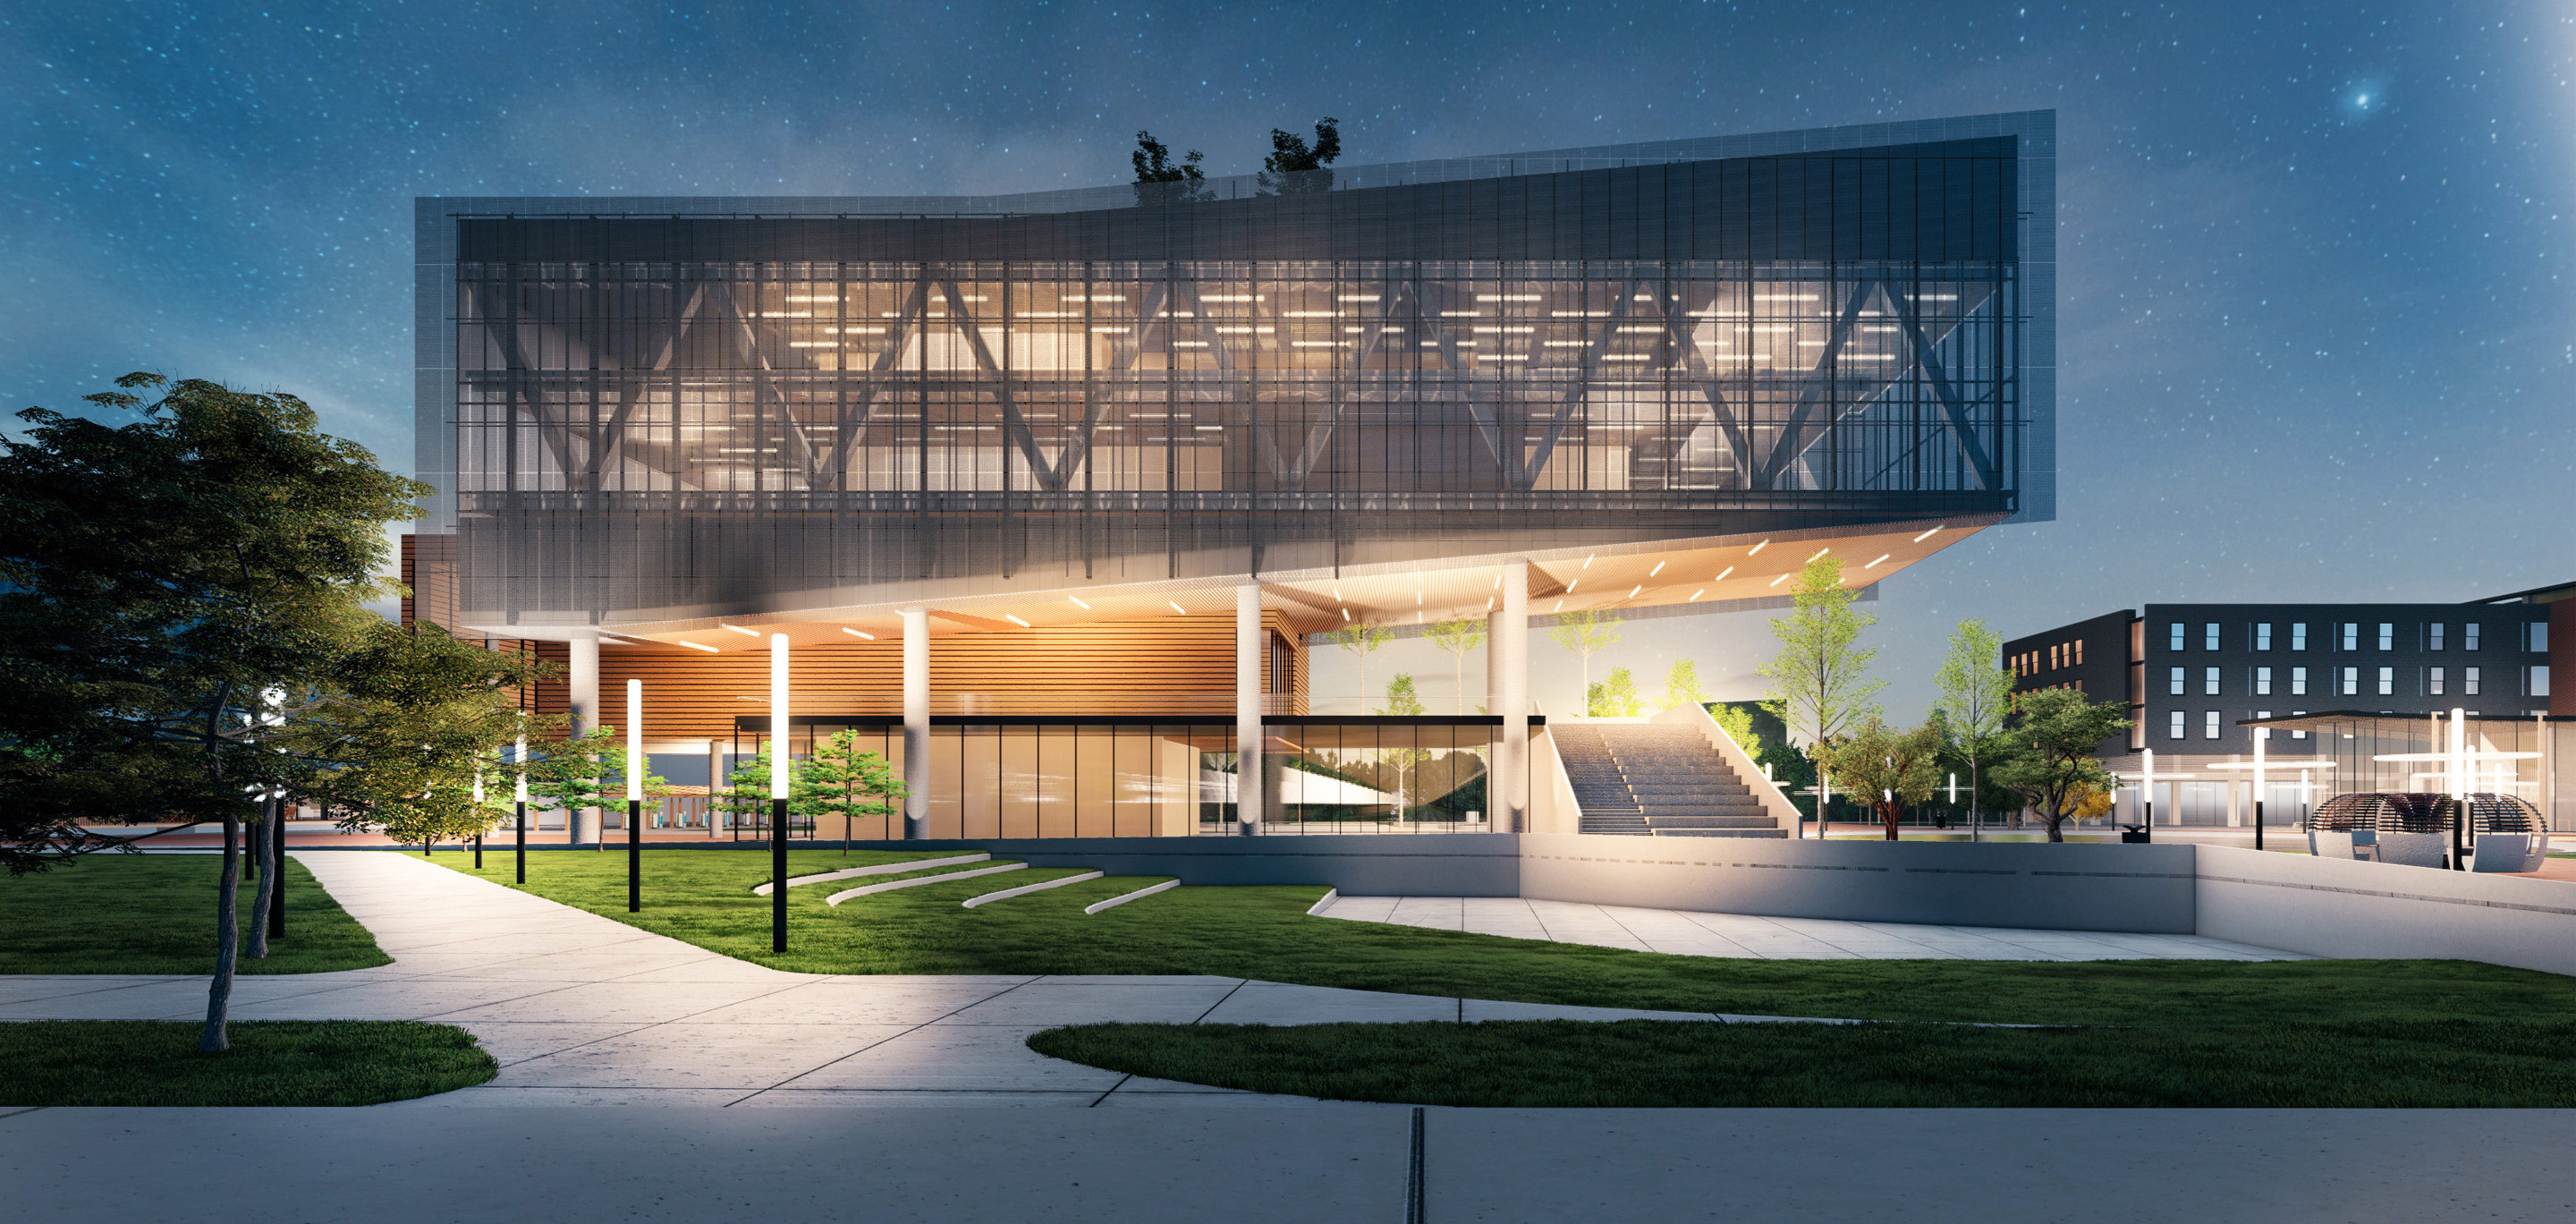 Rendering of the Propel Center, an innovation hub for the entire HBCU community that will provide curriculum, internships, and mentorship opportunities.